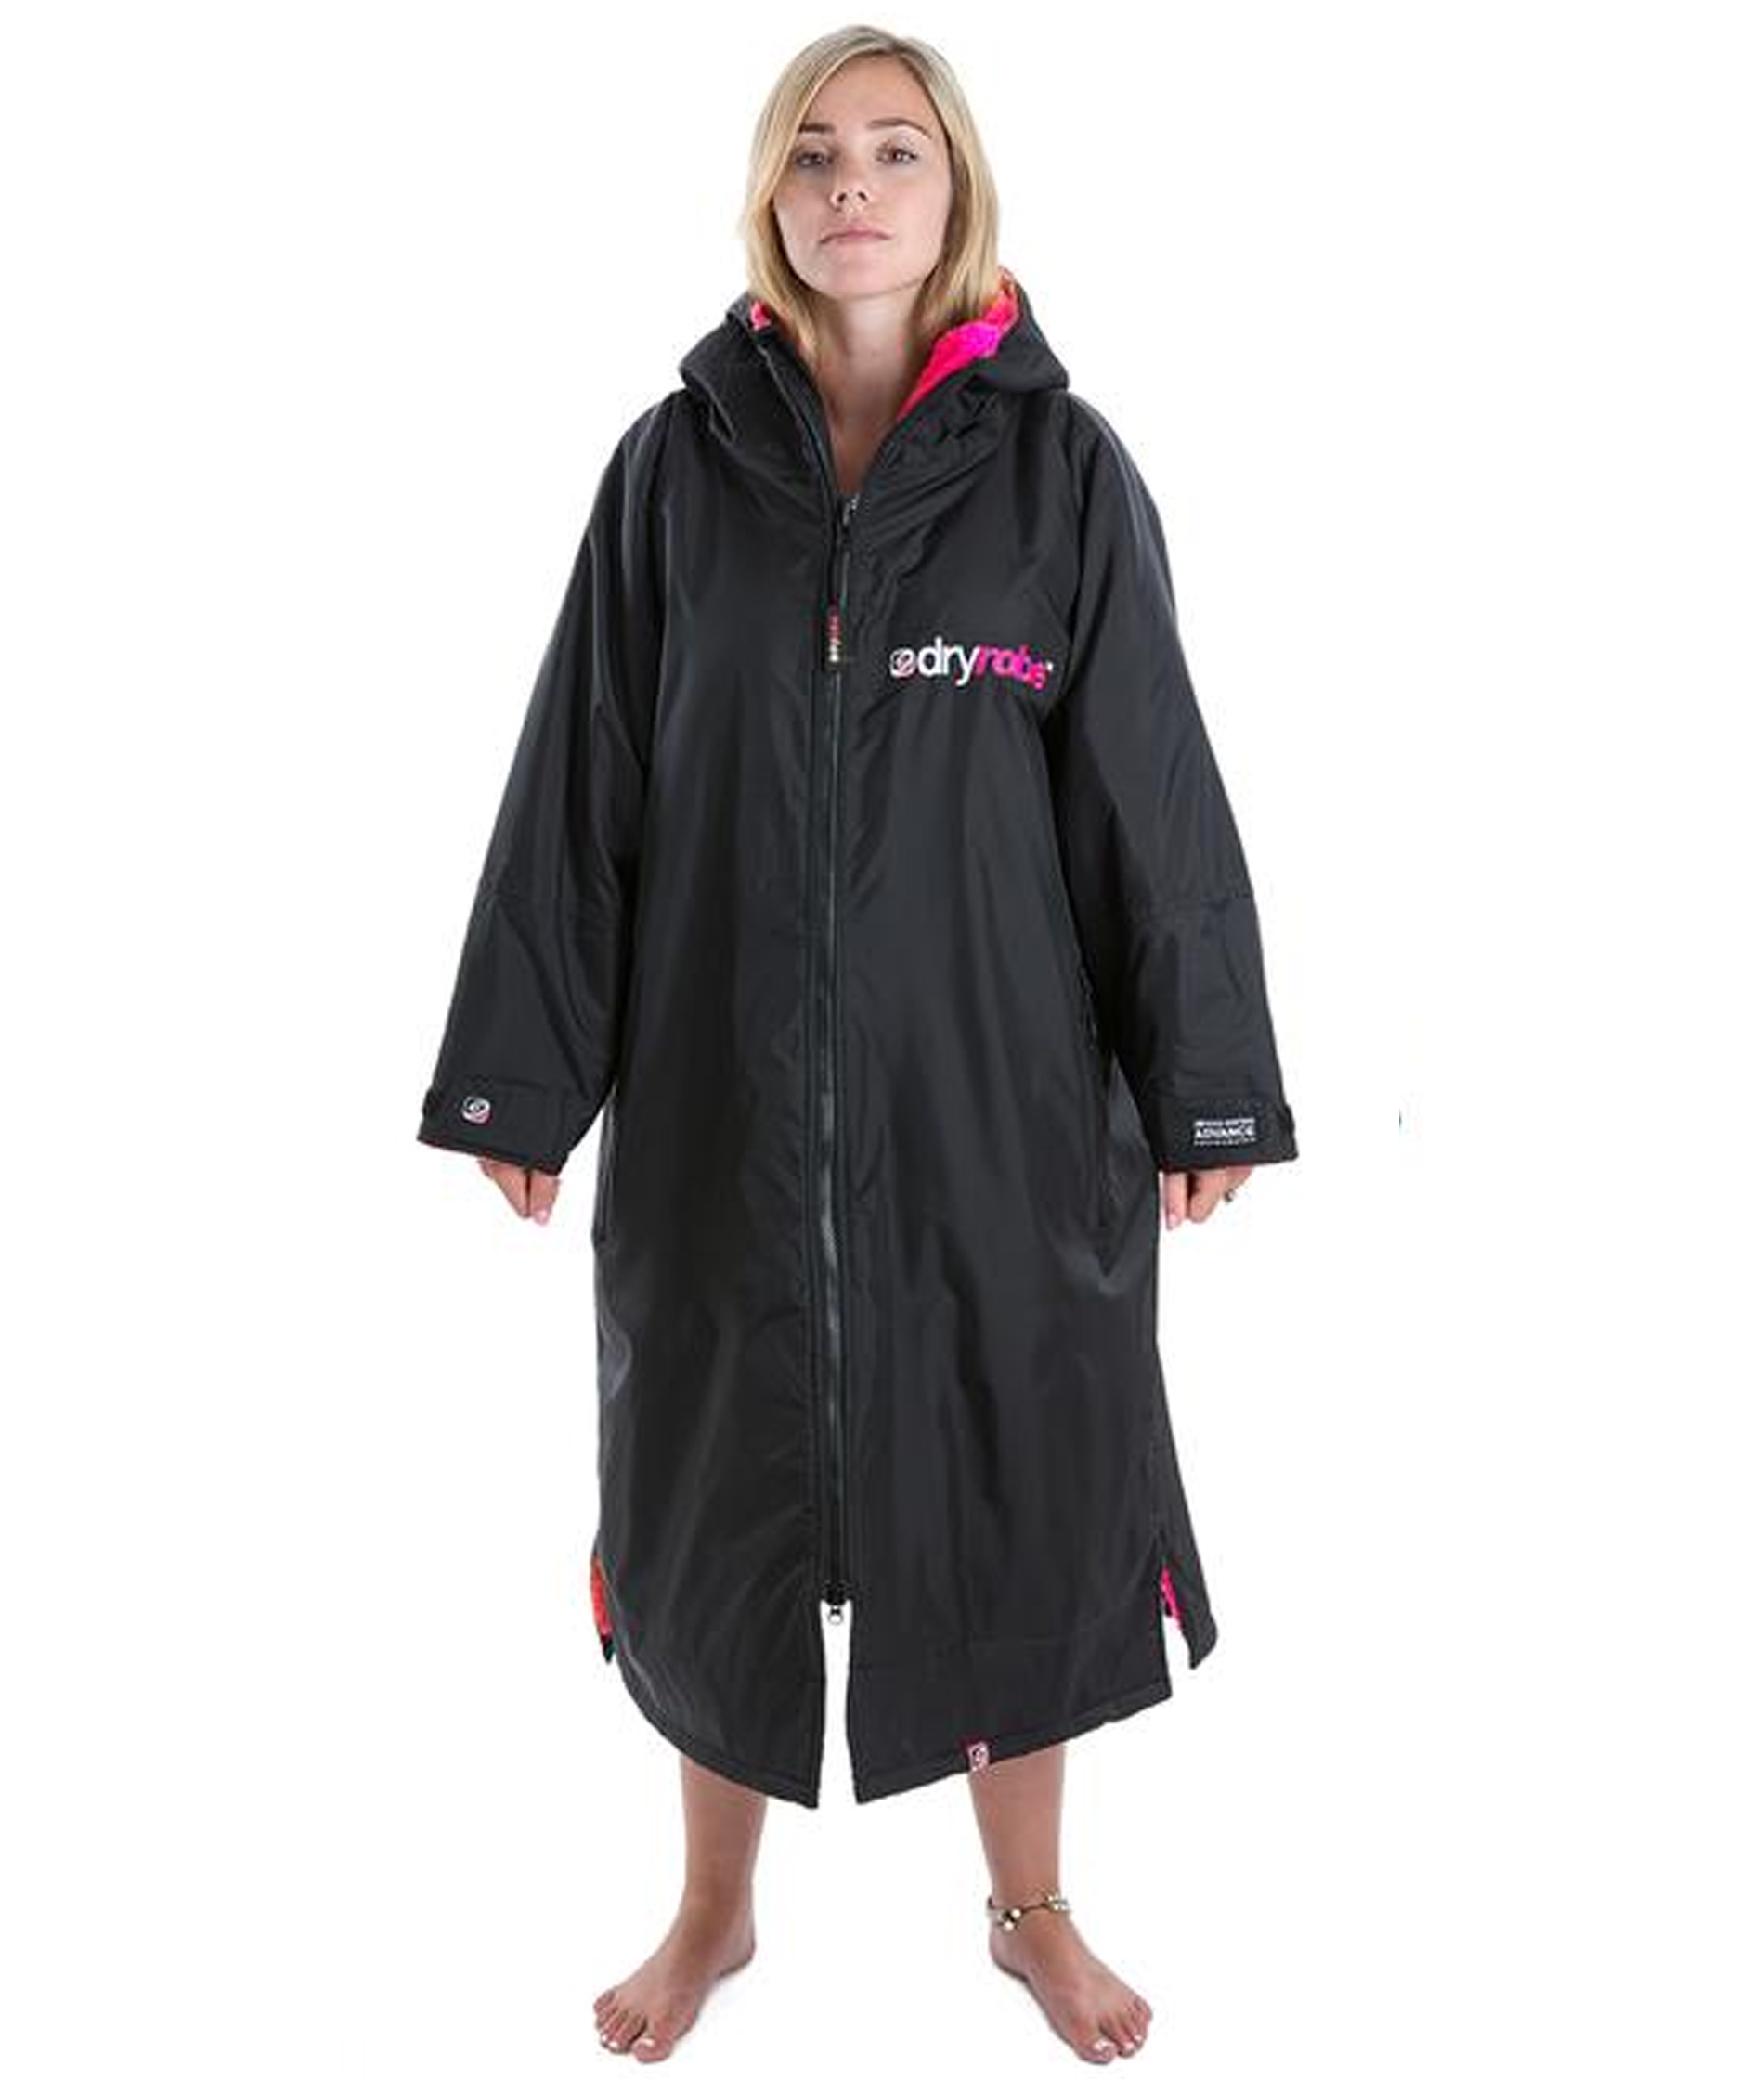 Dryrobe Advance Long Sleeve Black/Pink - Large